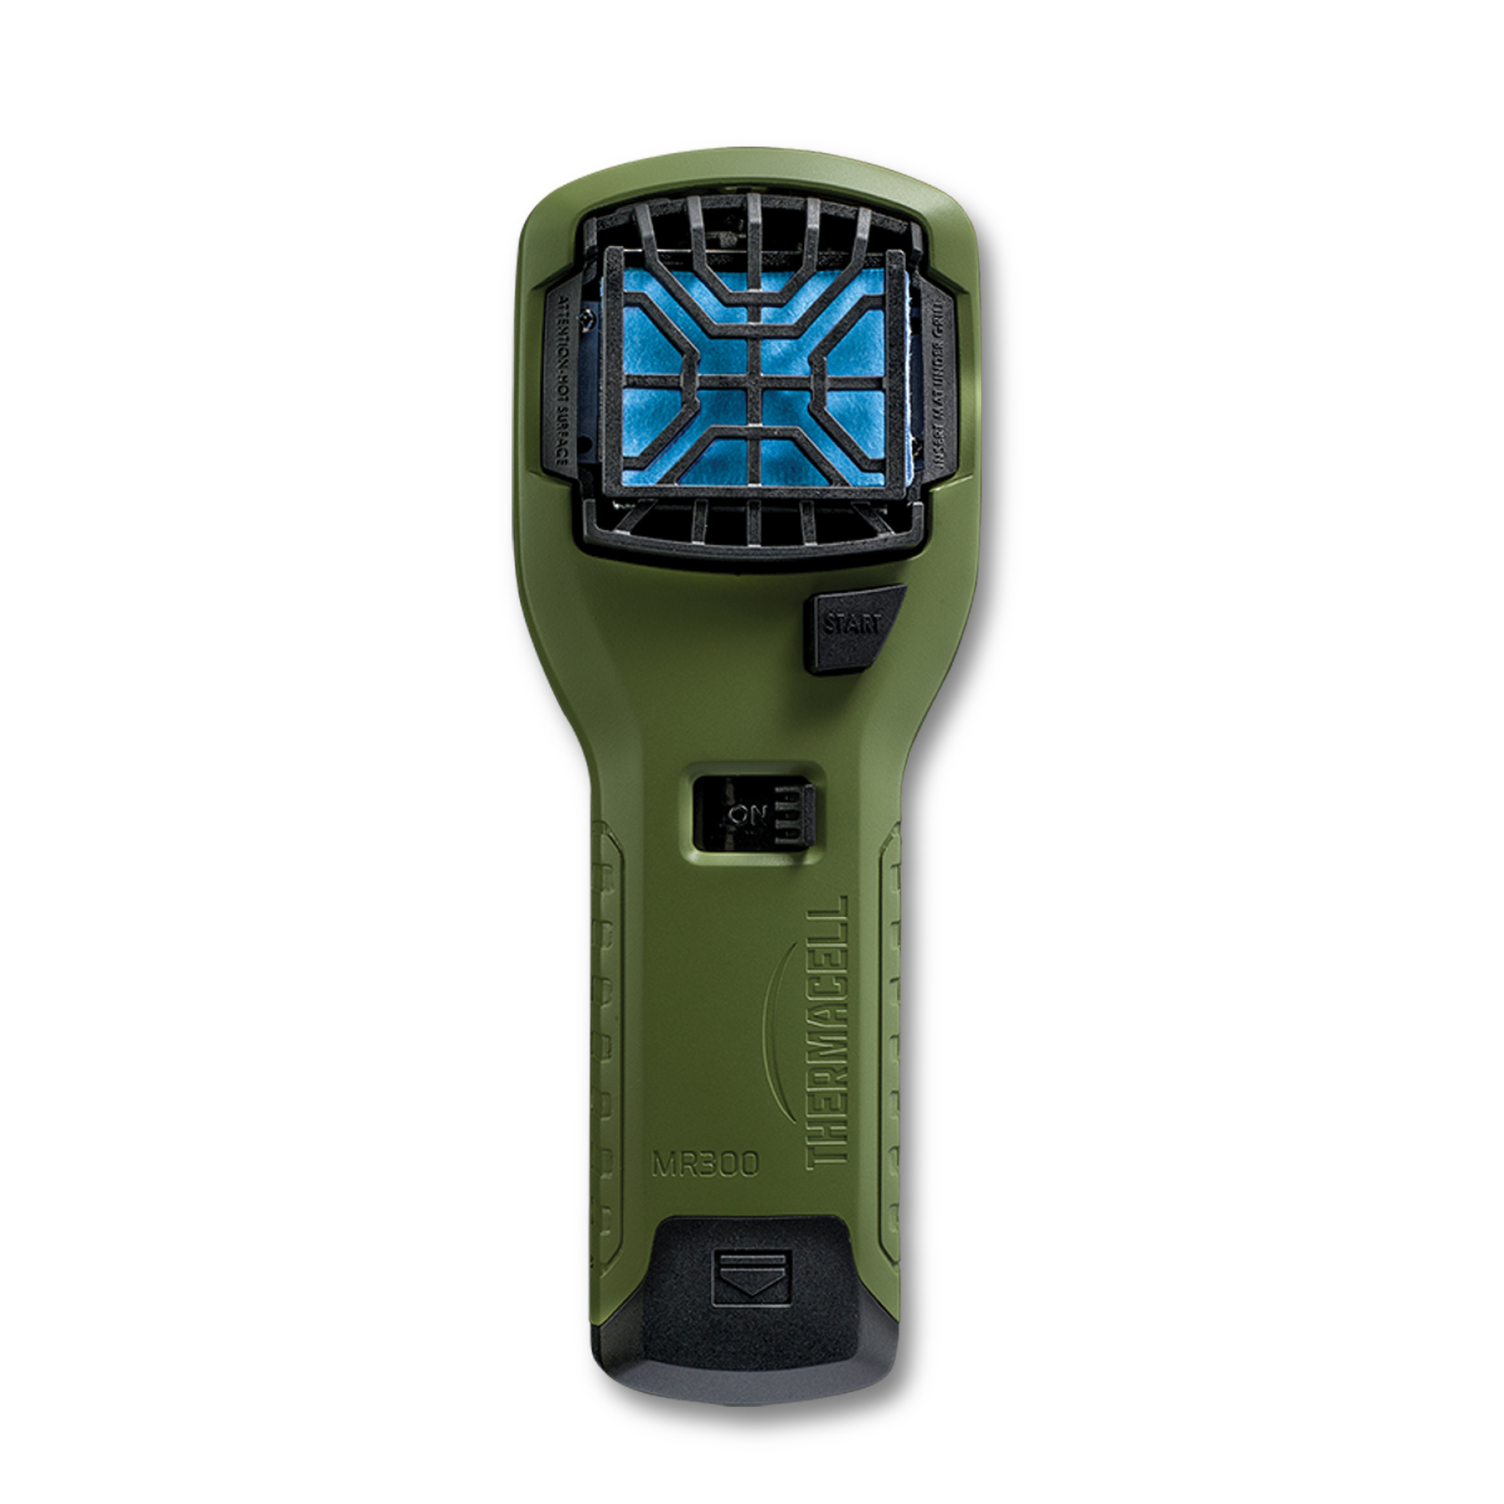 Thermacell Mr300 Portable Mosquito Repellent Device Olive Green